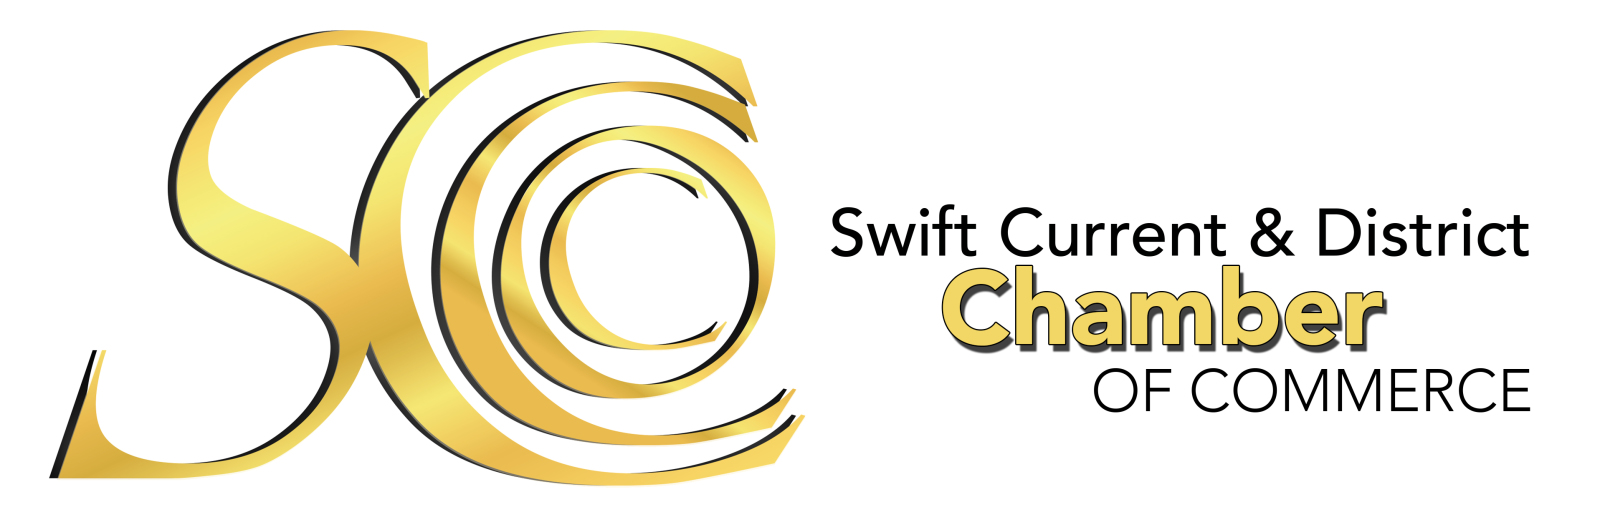 Swift Current & District Chamber of Commerce